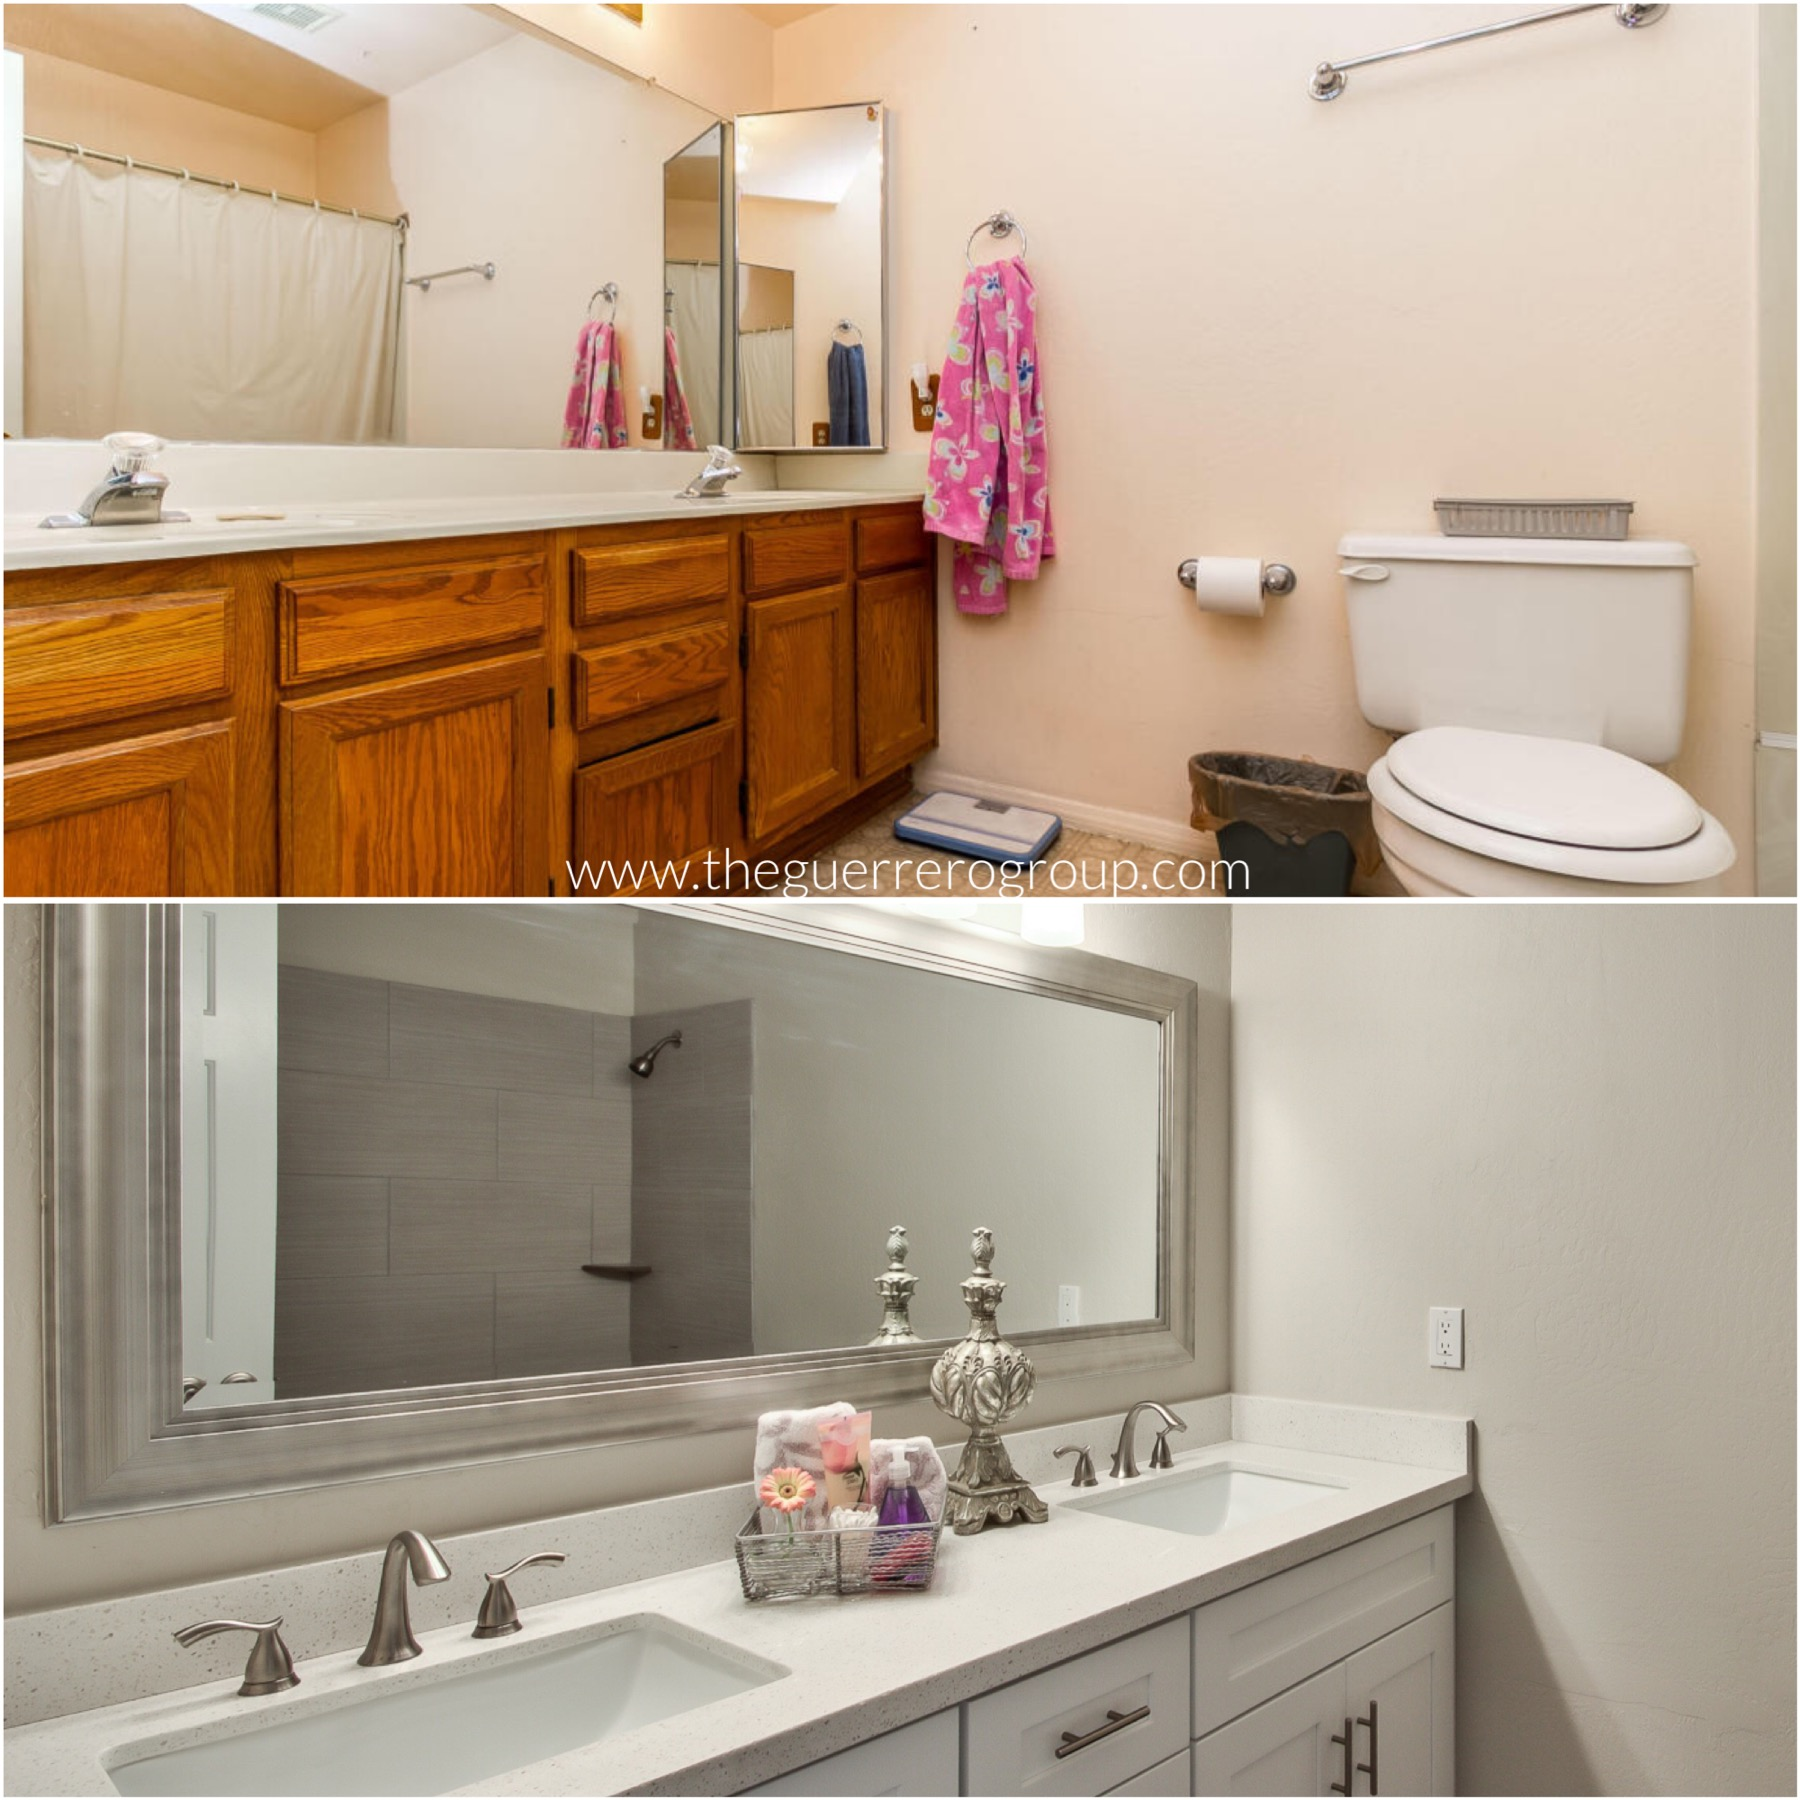 The Guerrero Group - Bathroom Renovation Design Before and After at Chandler Home for Sale in Tierra Dobson 101 Freeway & Warner